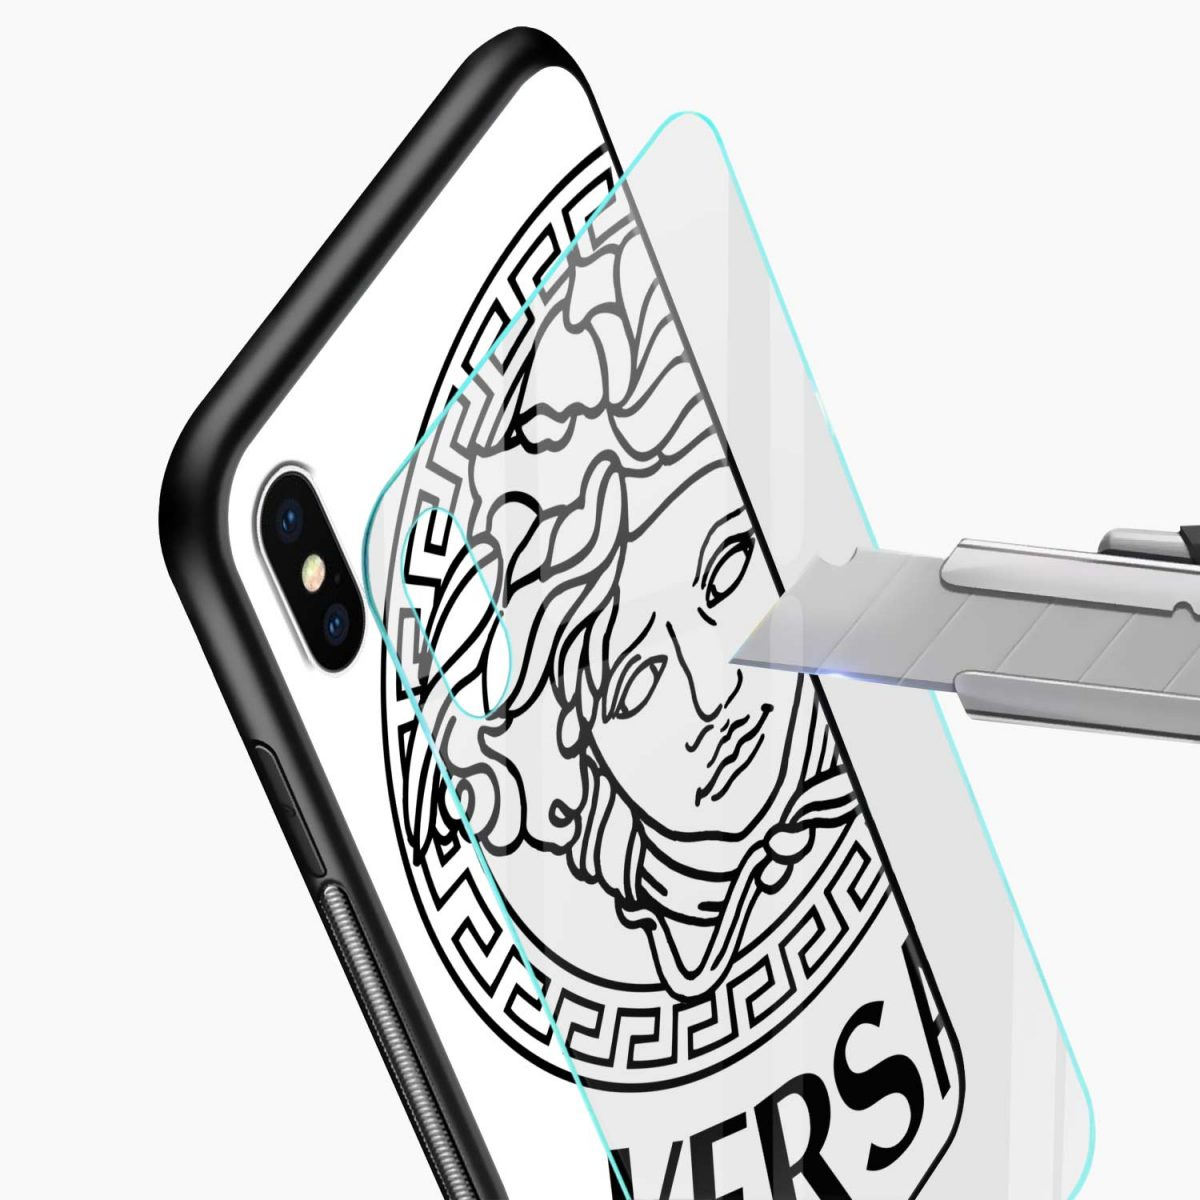 versace black white glass view apple iphone x xs max back cover